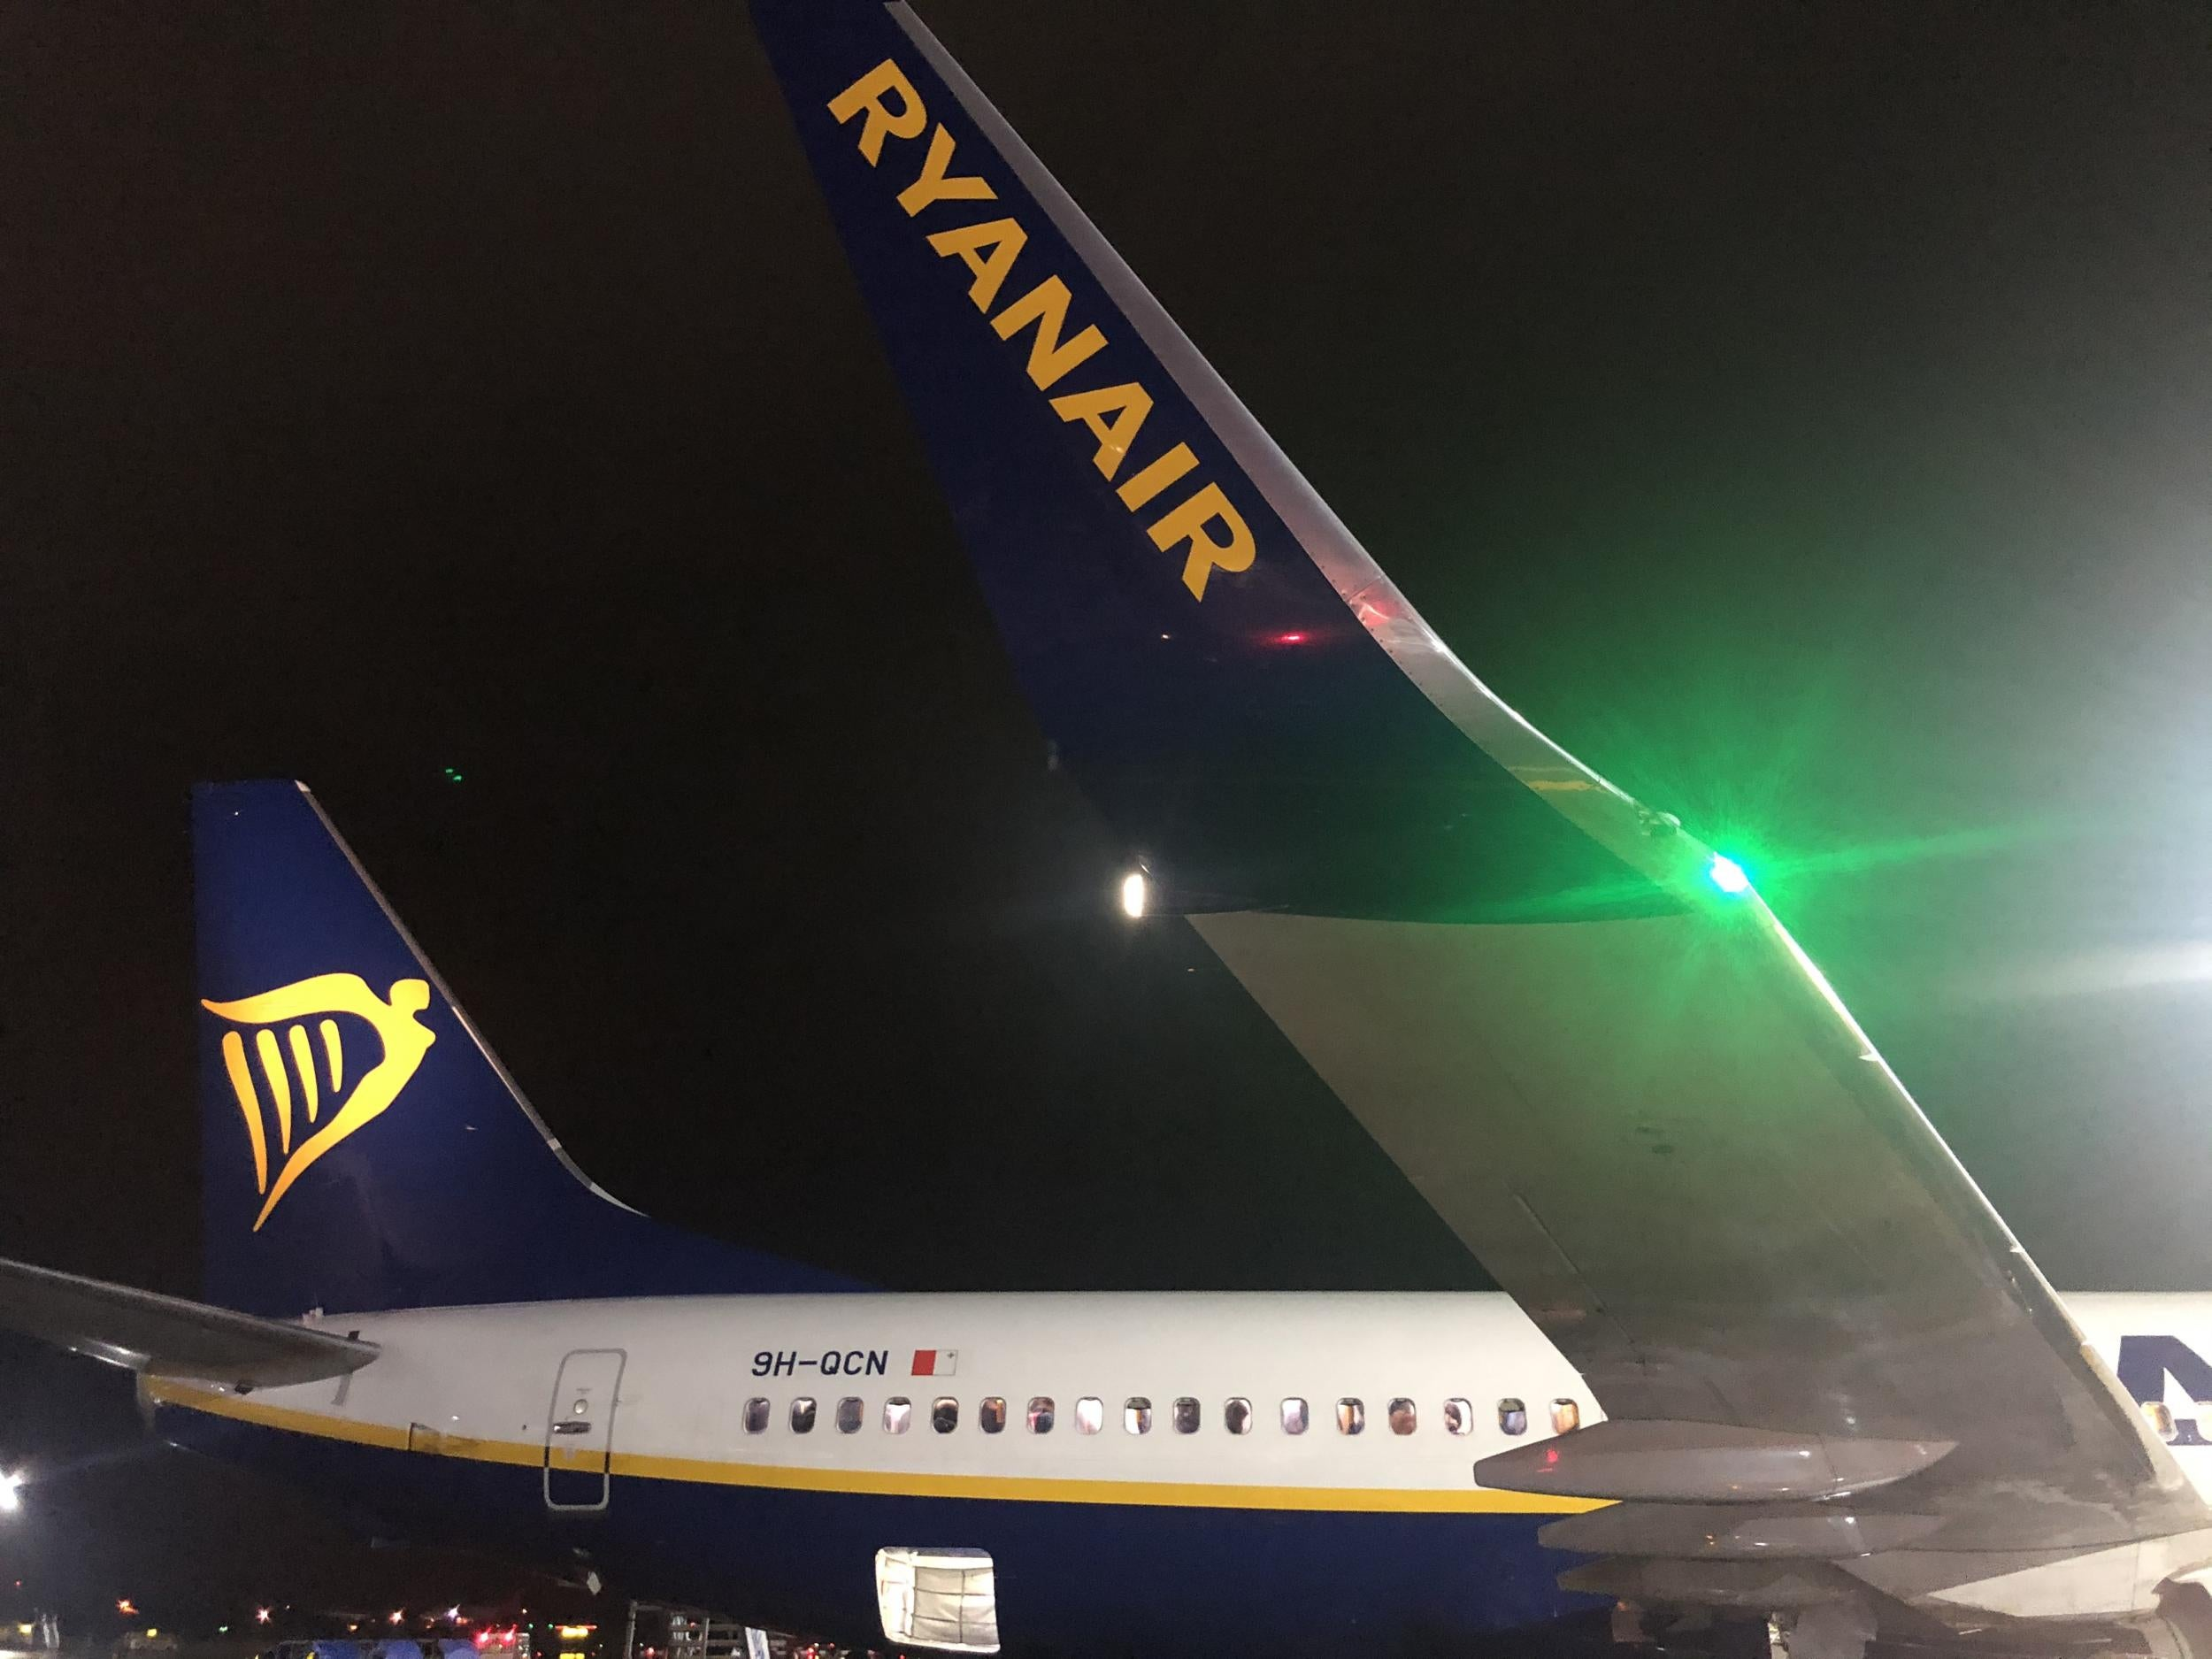 Ryanair says no holiday flights until July and cuts up to 3,000 jobs